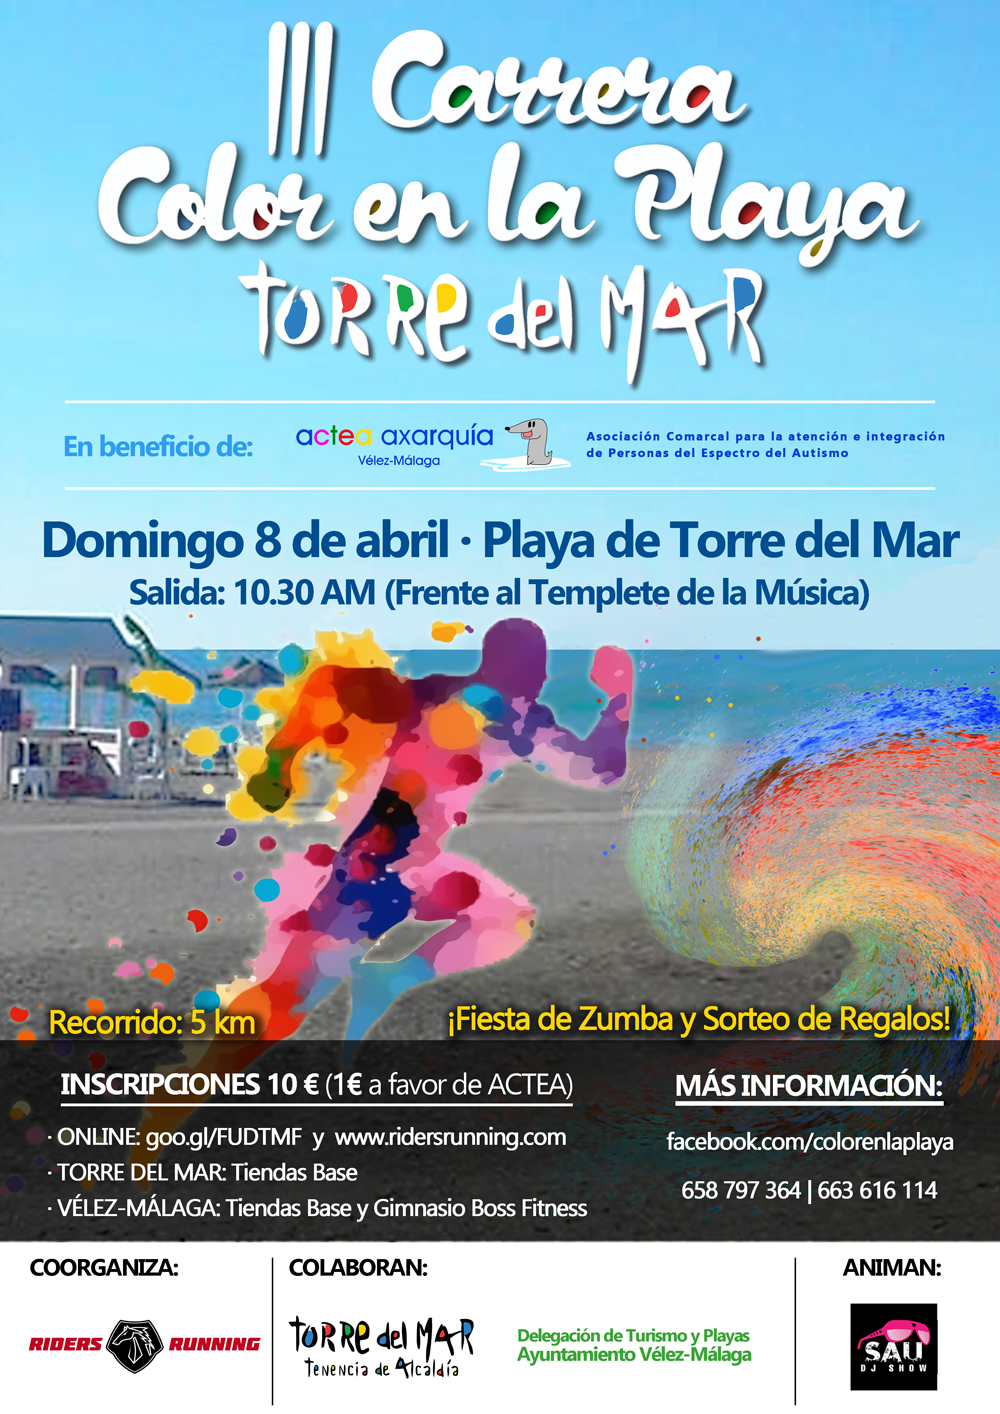 Cartel_III Carrera Color en la Playa Torre del Mar_web